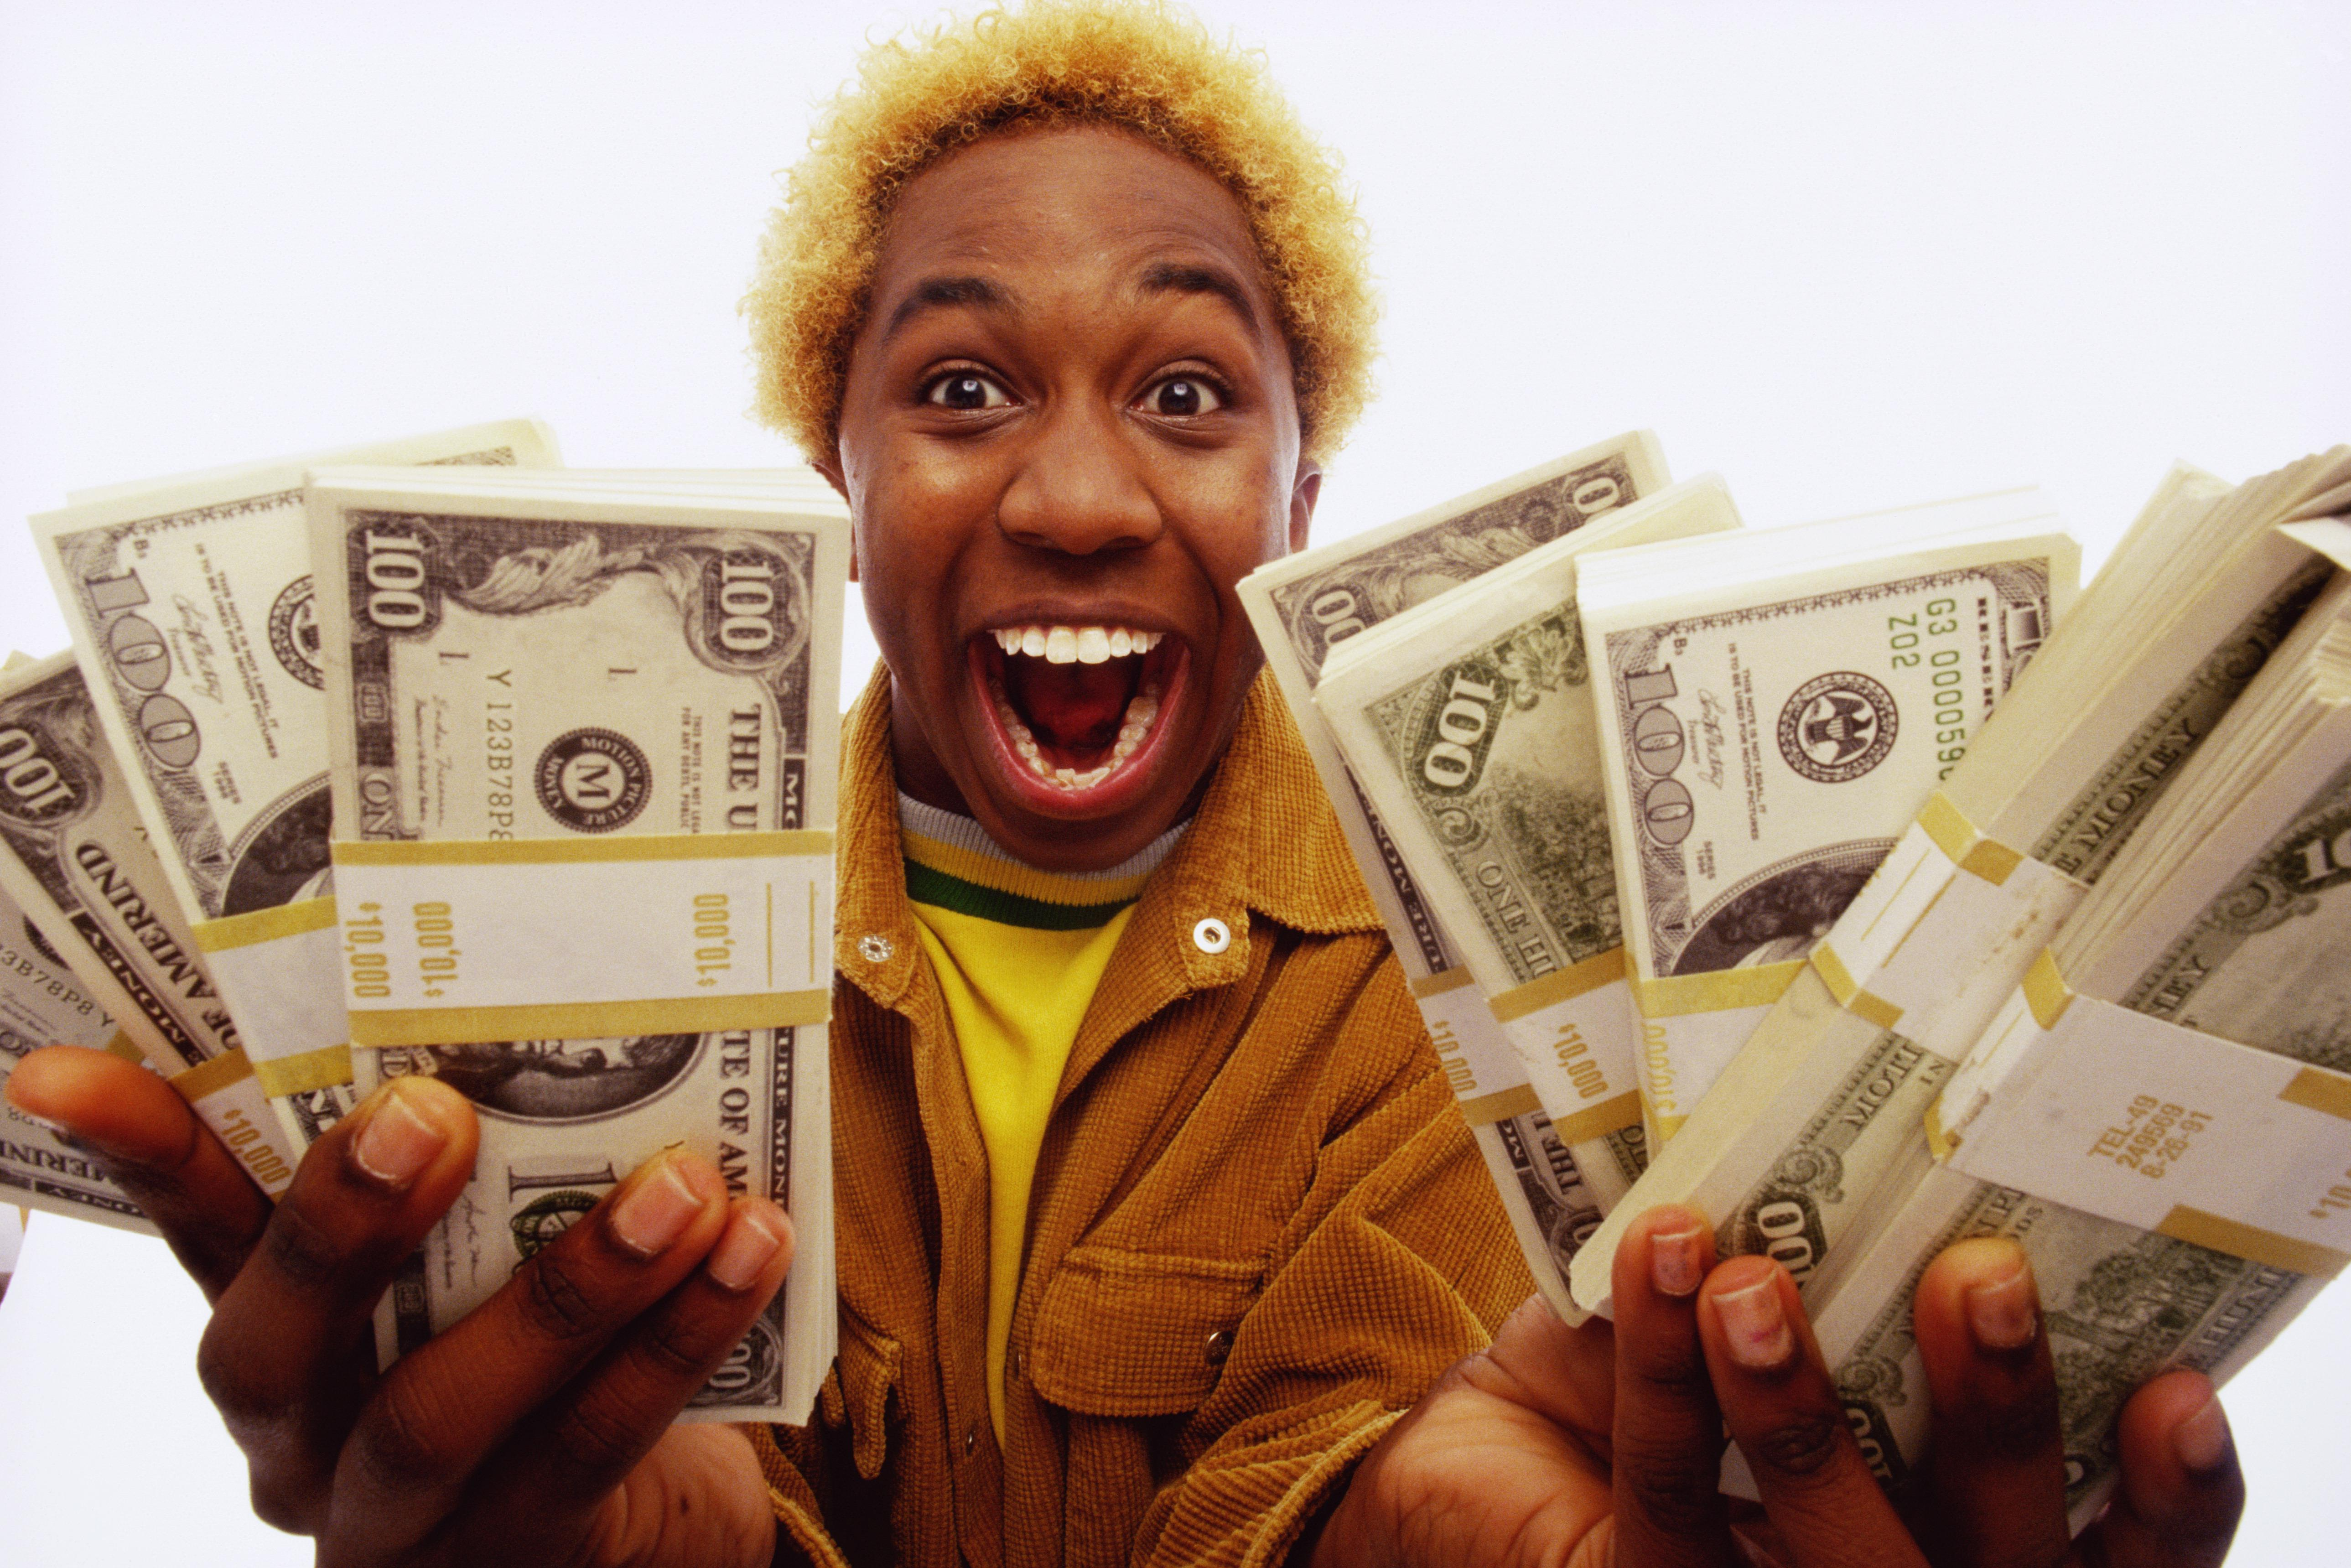 Young man holding bundles of US dollars, smiling, portrait